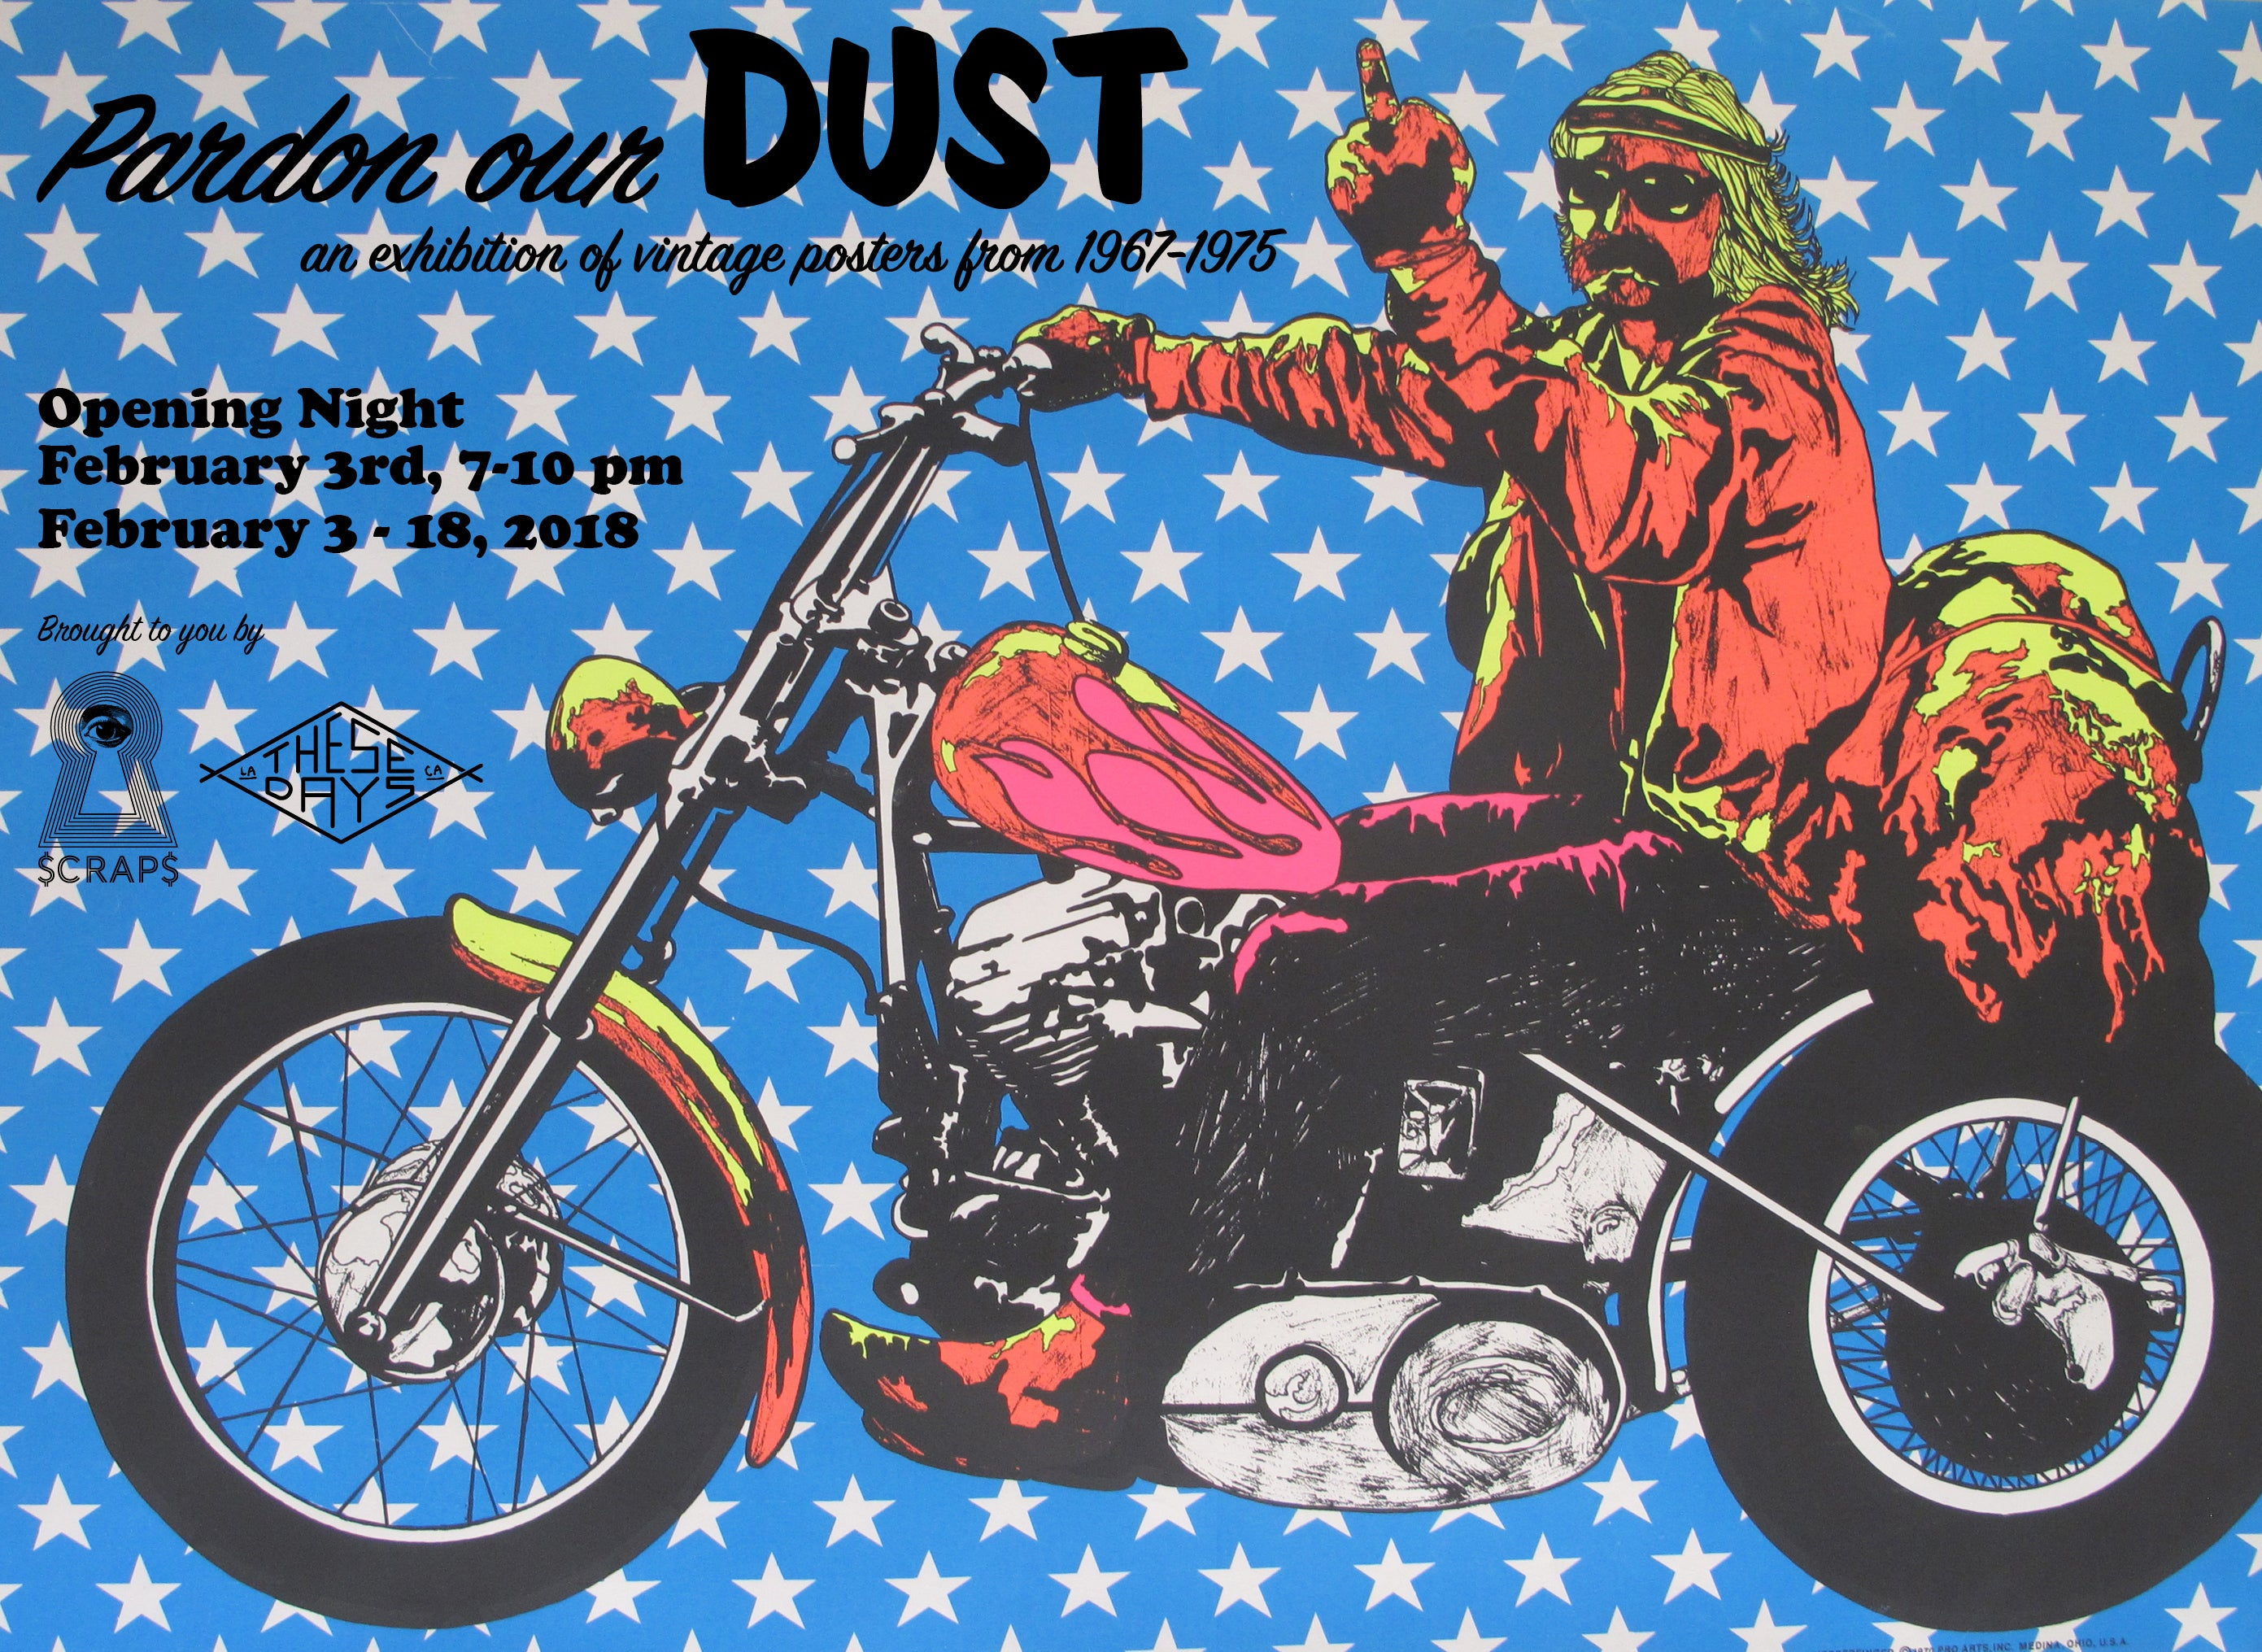 PARDON OUR DUST! An Exhibition of Vintage Posters from 1967-1975